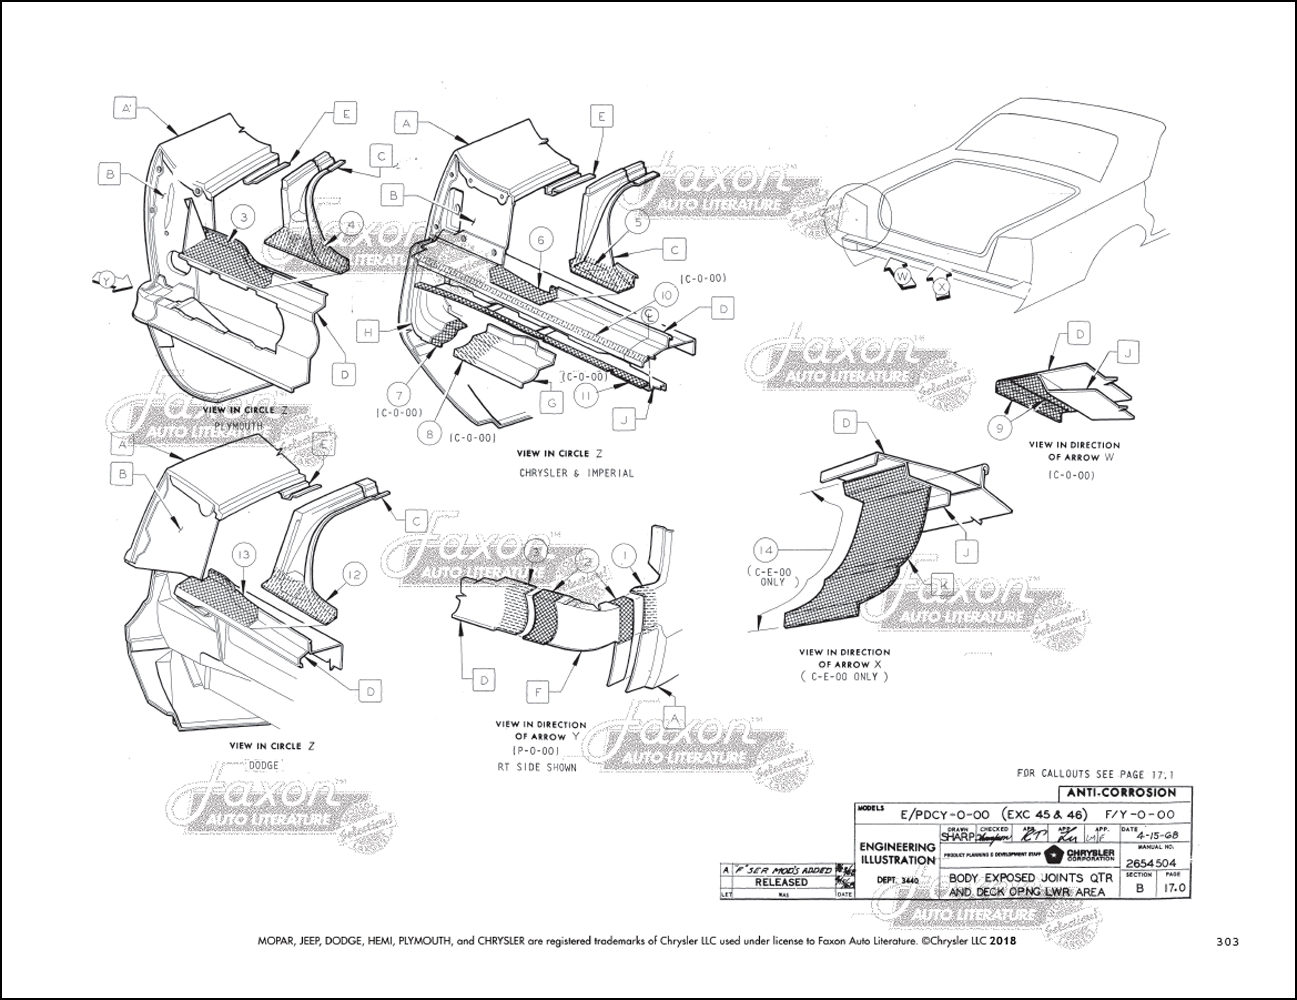 1969-1970 Chrysler, Plymouth, Dodge Big Car Body Assembly